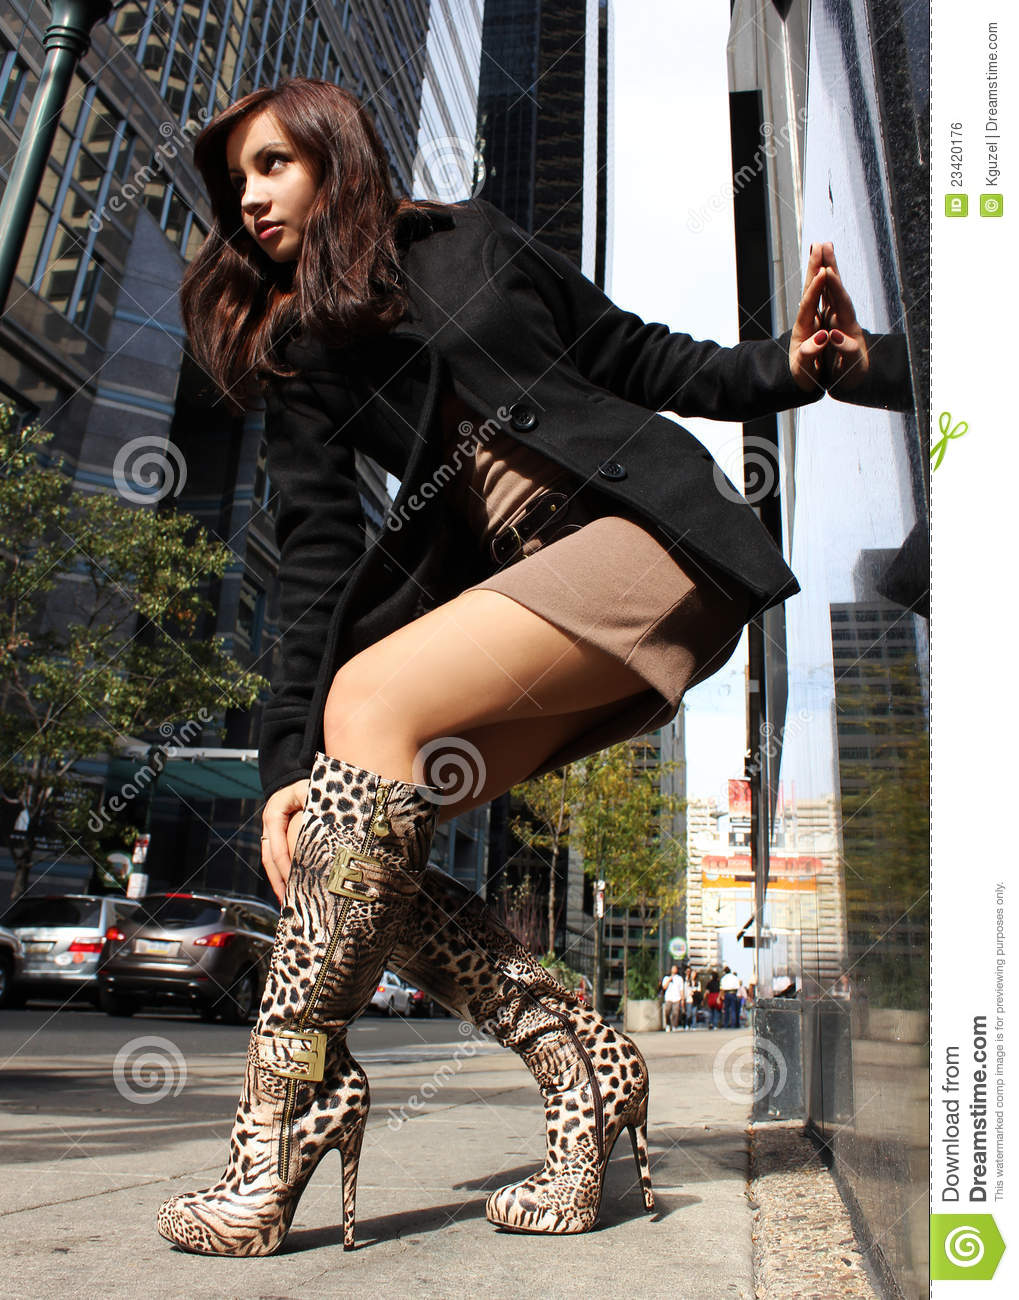 Girl In Leopard Boots Stock Photo Image Of America, Human -9447